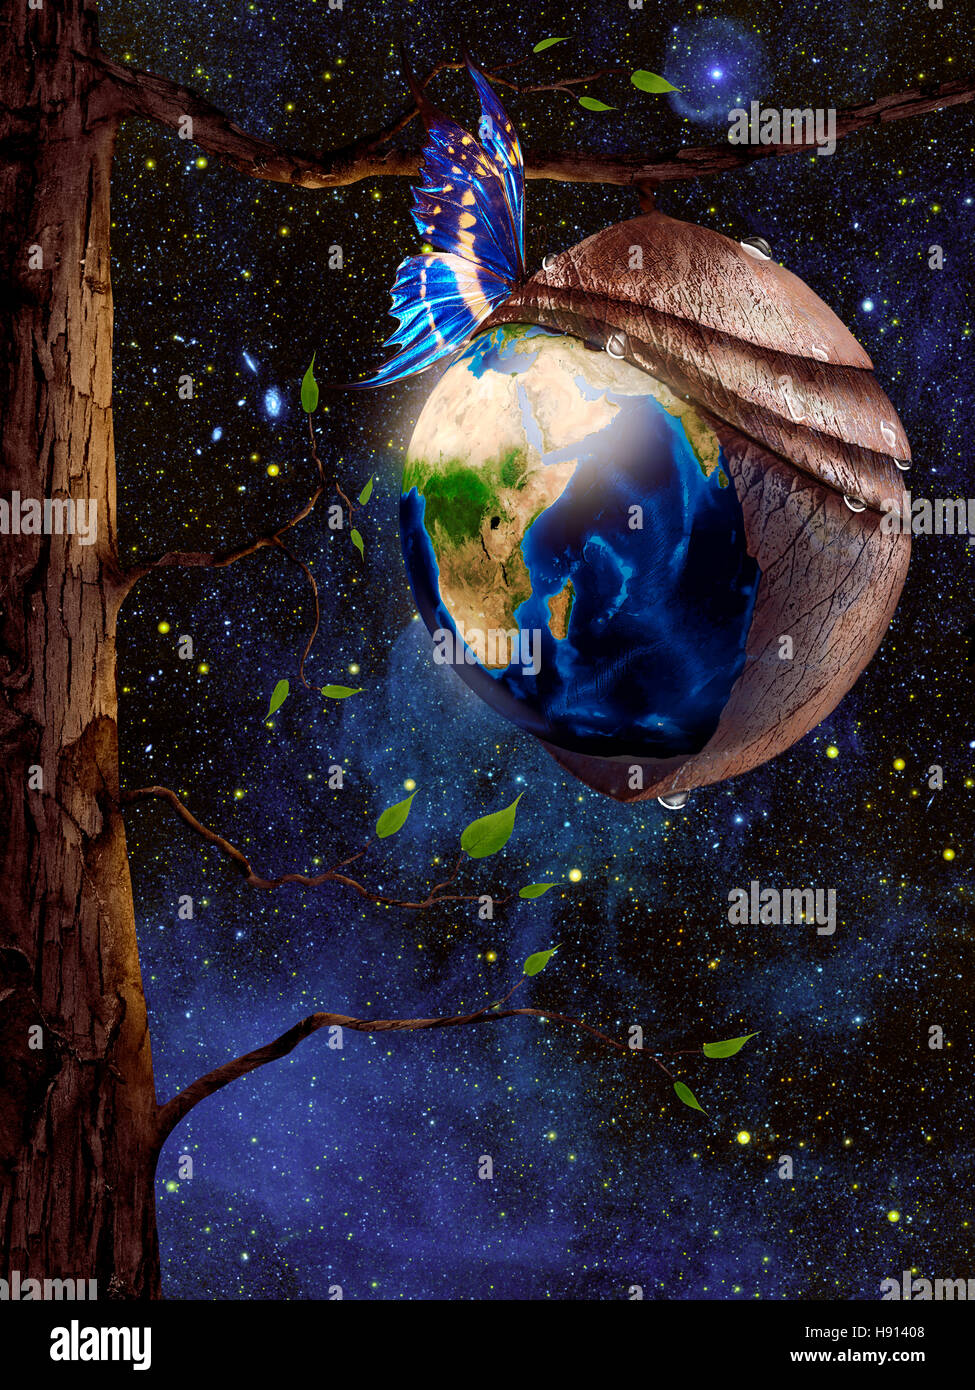 New planet Earth reborn from butterfly cocoon hanging from a tree in cosmic space, conceptual spiritual zen photo - Stock Image